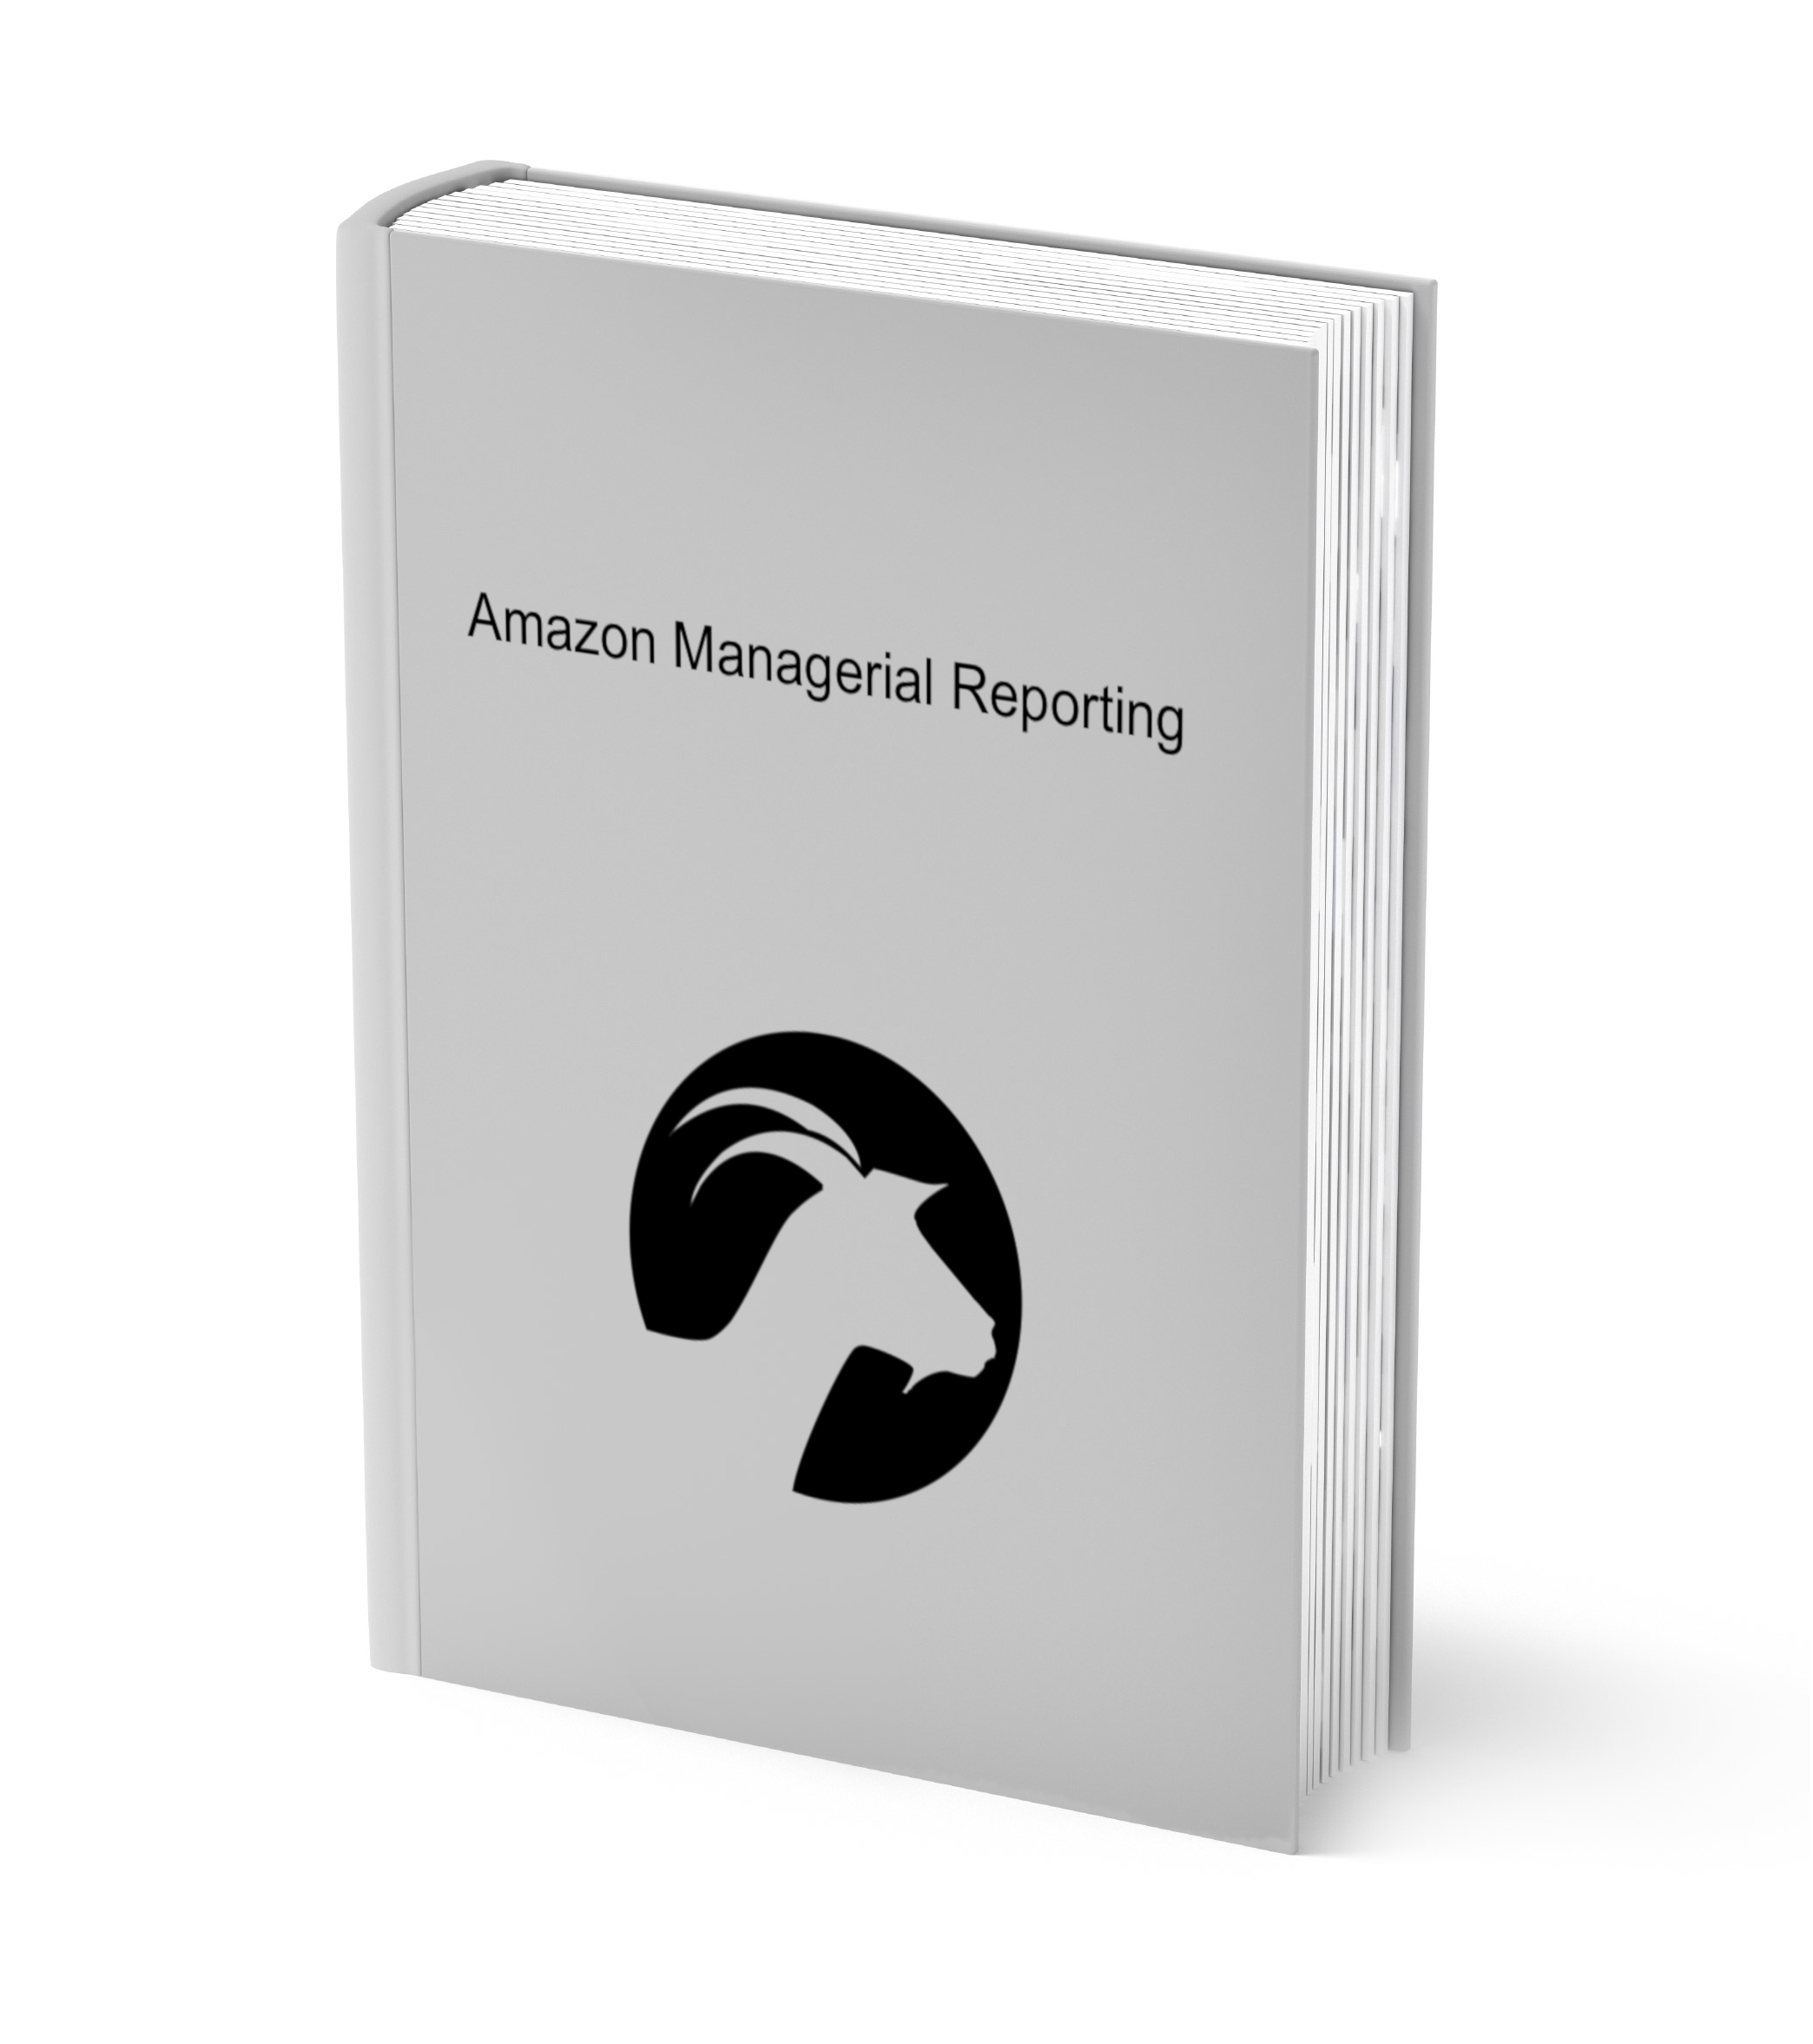 Amazon Managerial Reporting Book Cover.jpg